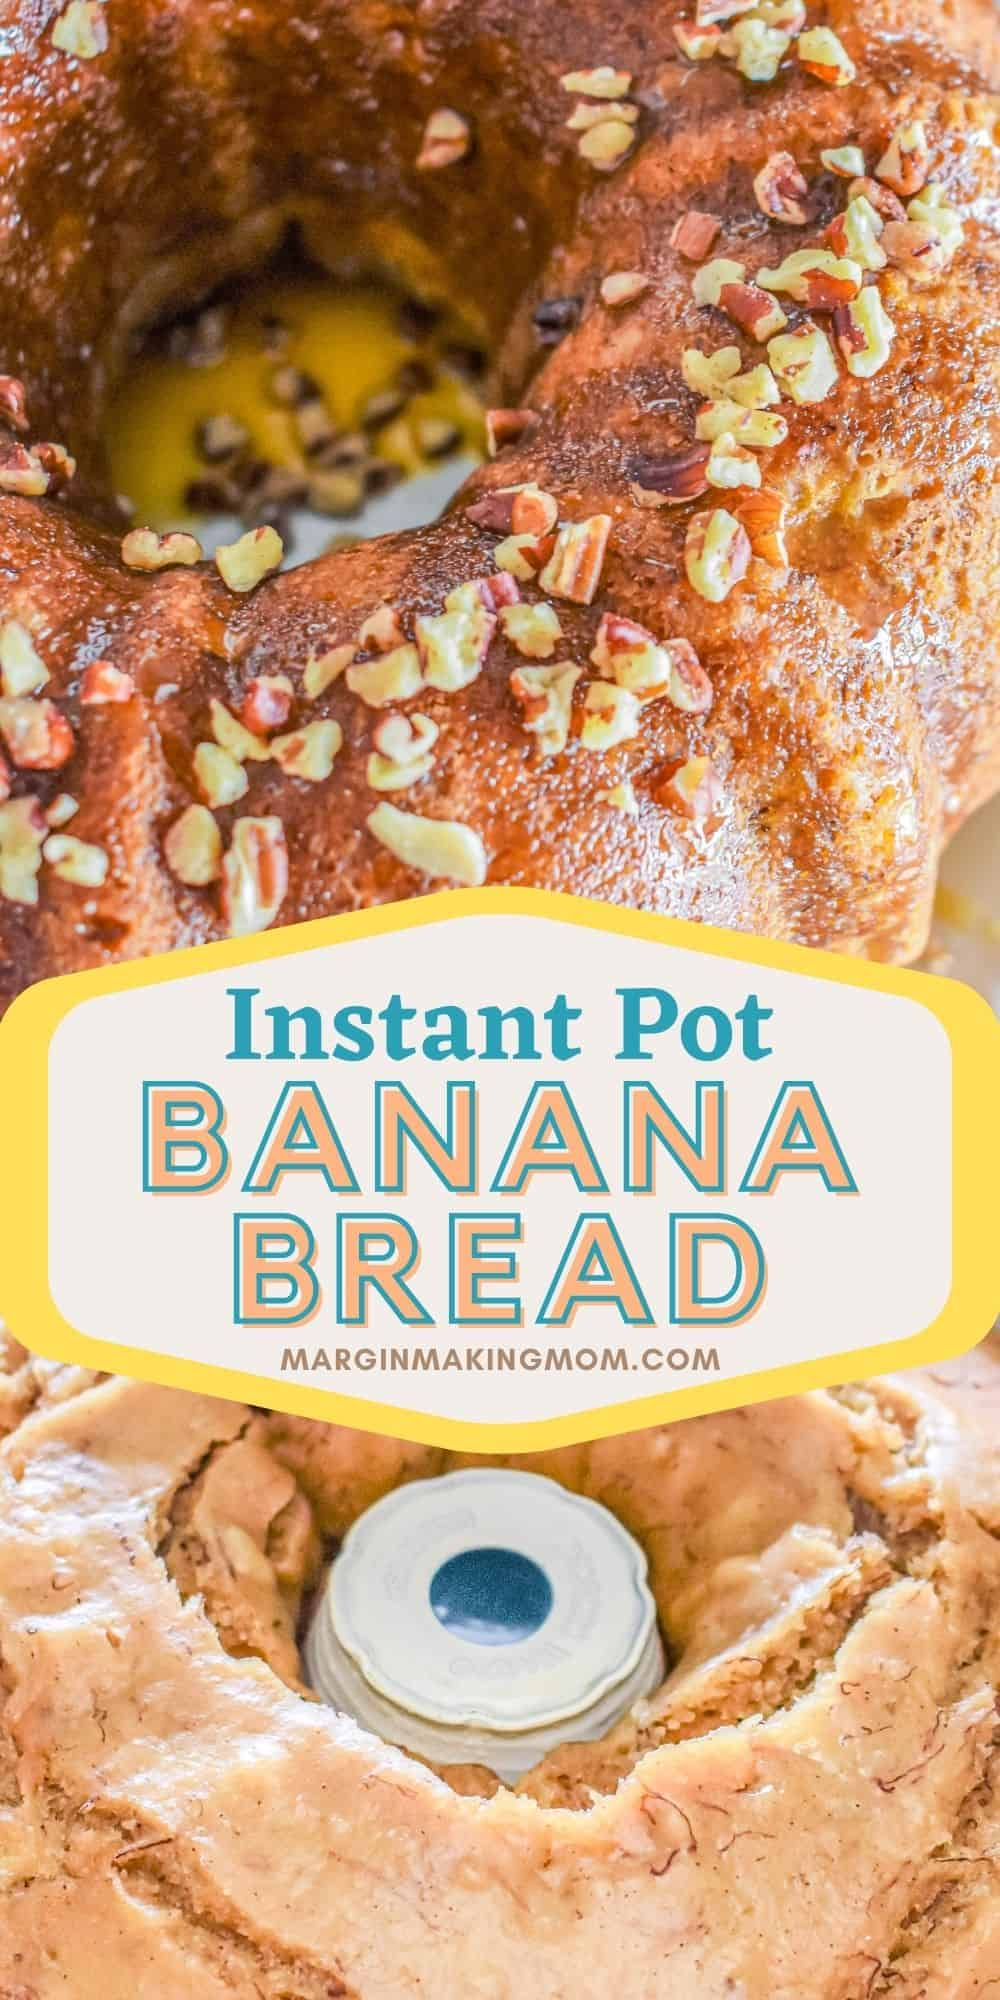 collage image featuring two photos of Instant Pot banana bread. One photo shows it fresh out of the pressure cooker and the other shows it topped with caramel sauce and pecans.